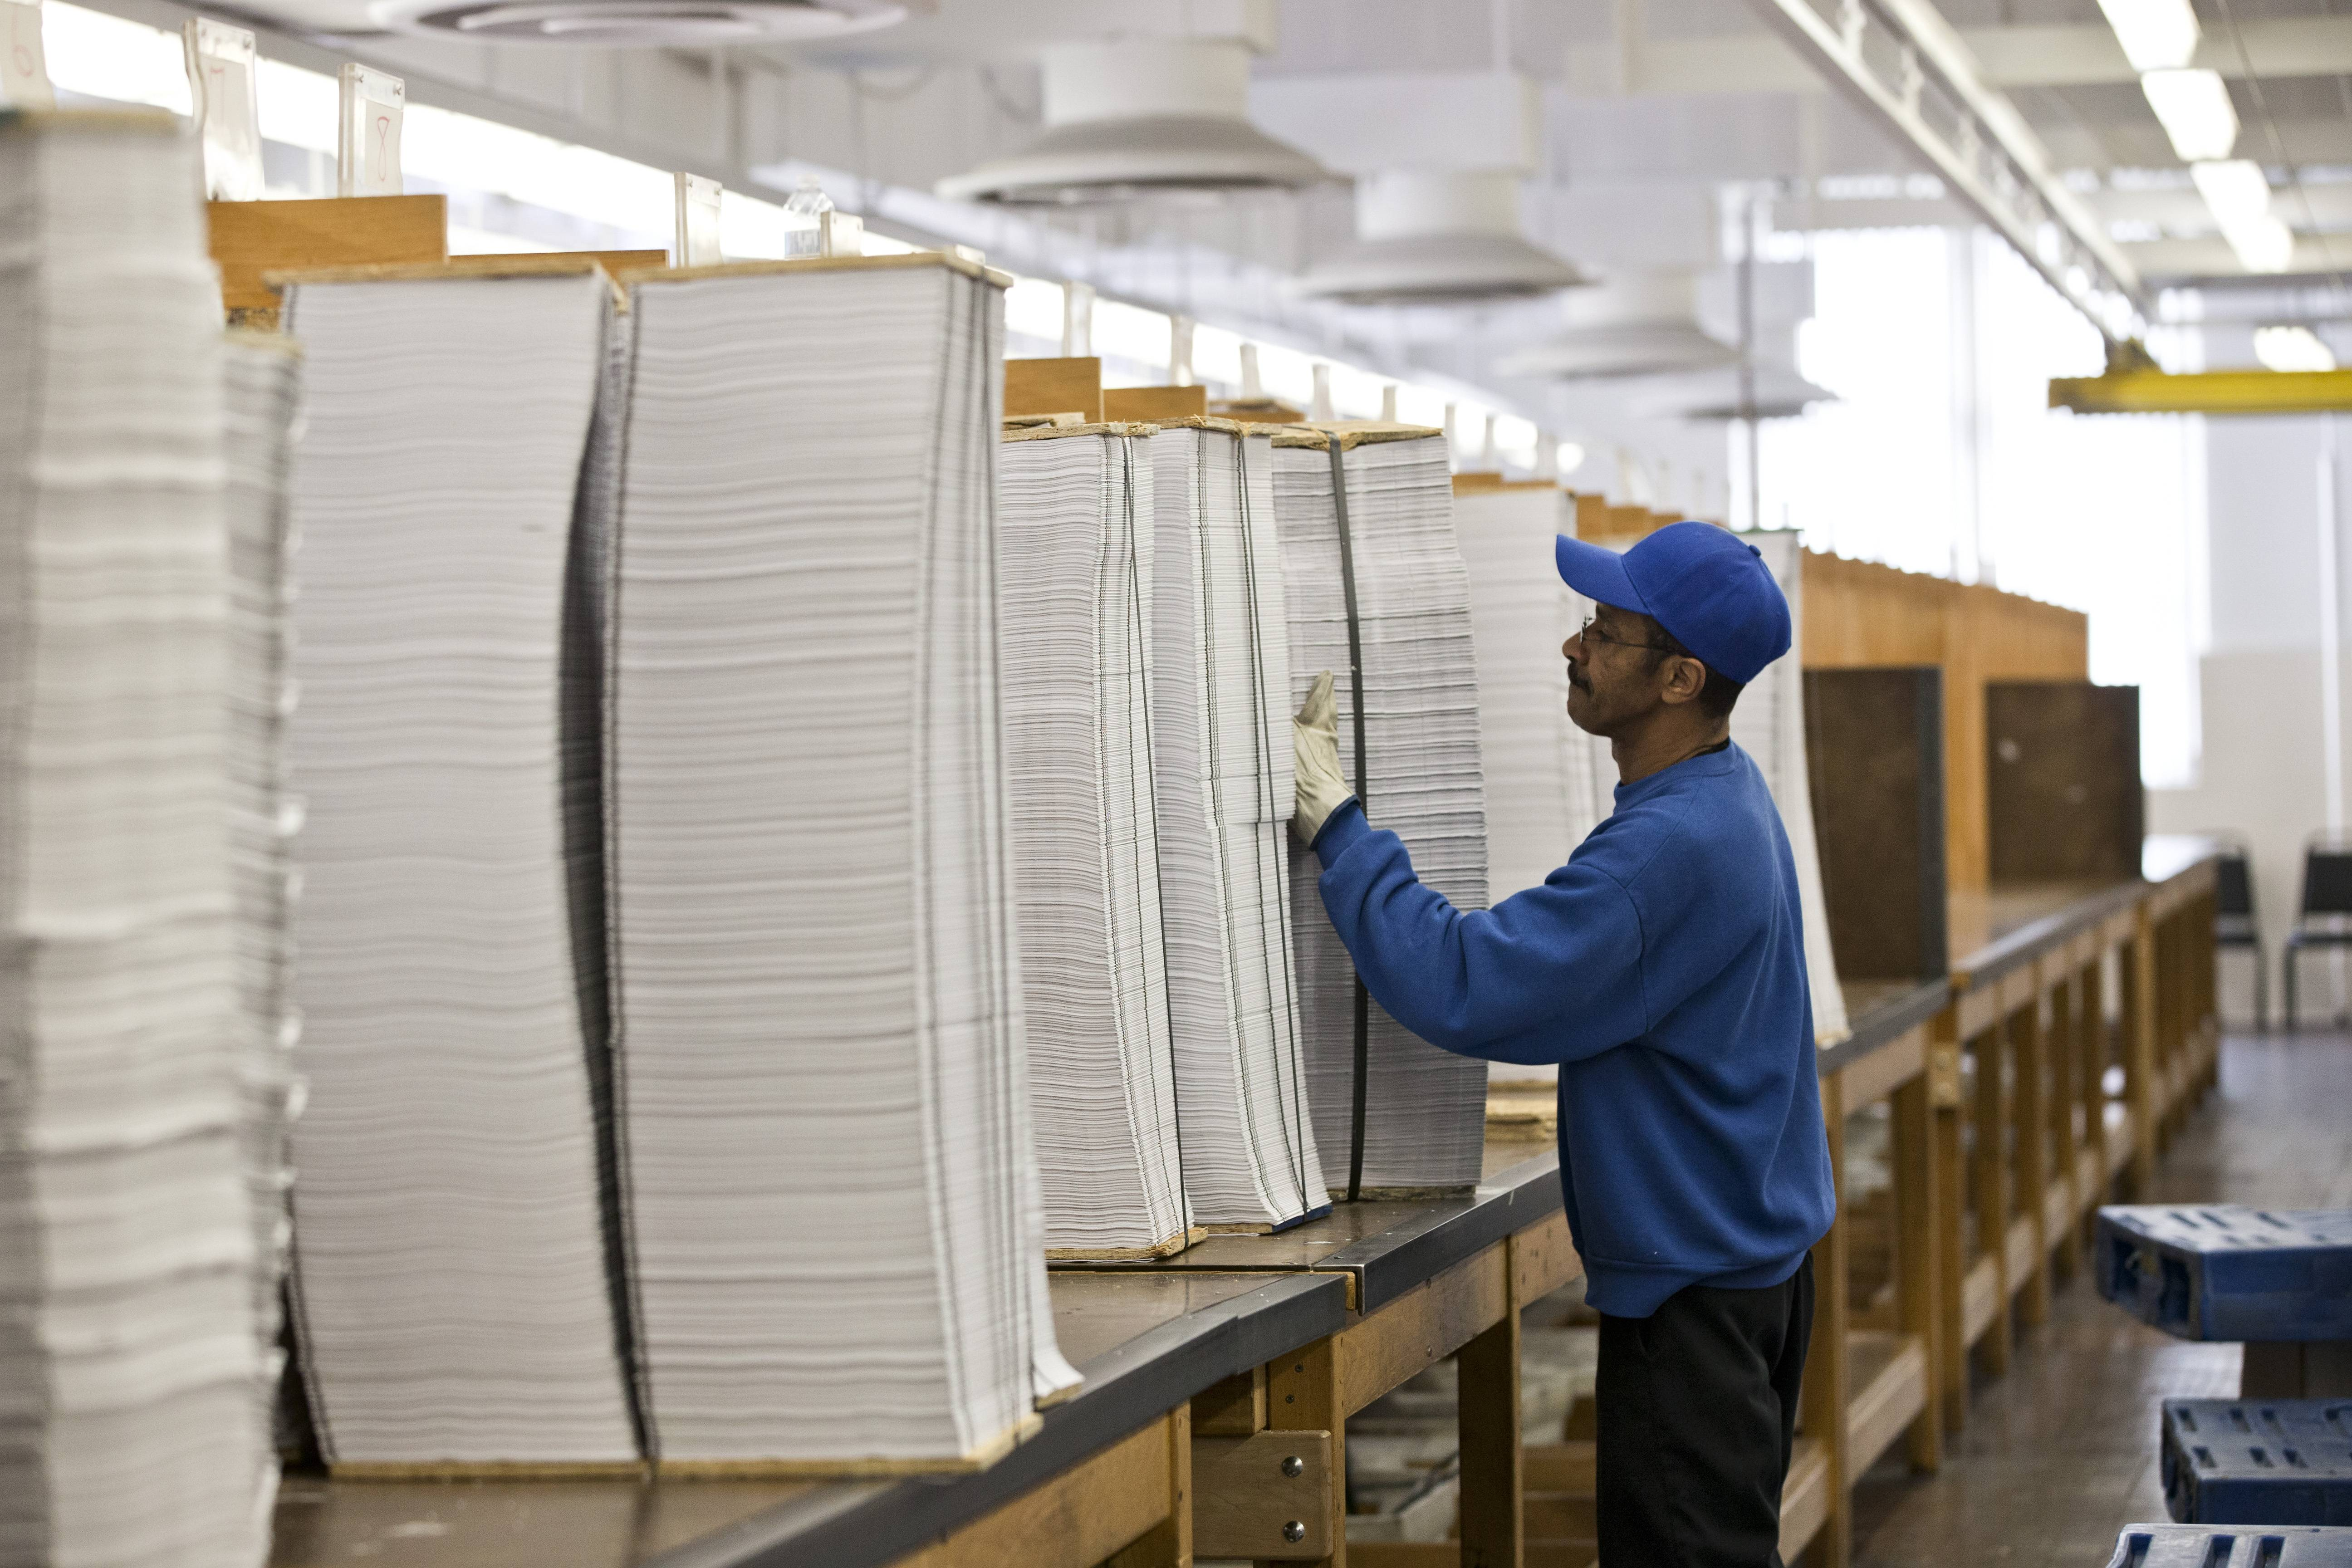 Printed copies of President Barack Obama's proposed budget plan for fiscal year 2014 are prepared for binding at the U.S. Government Printing Office in Washington.